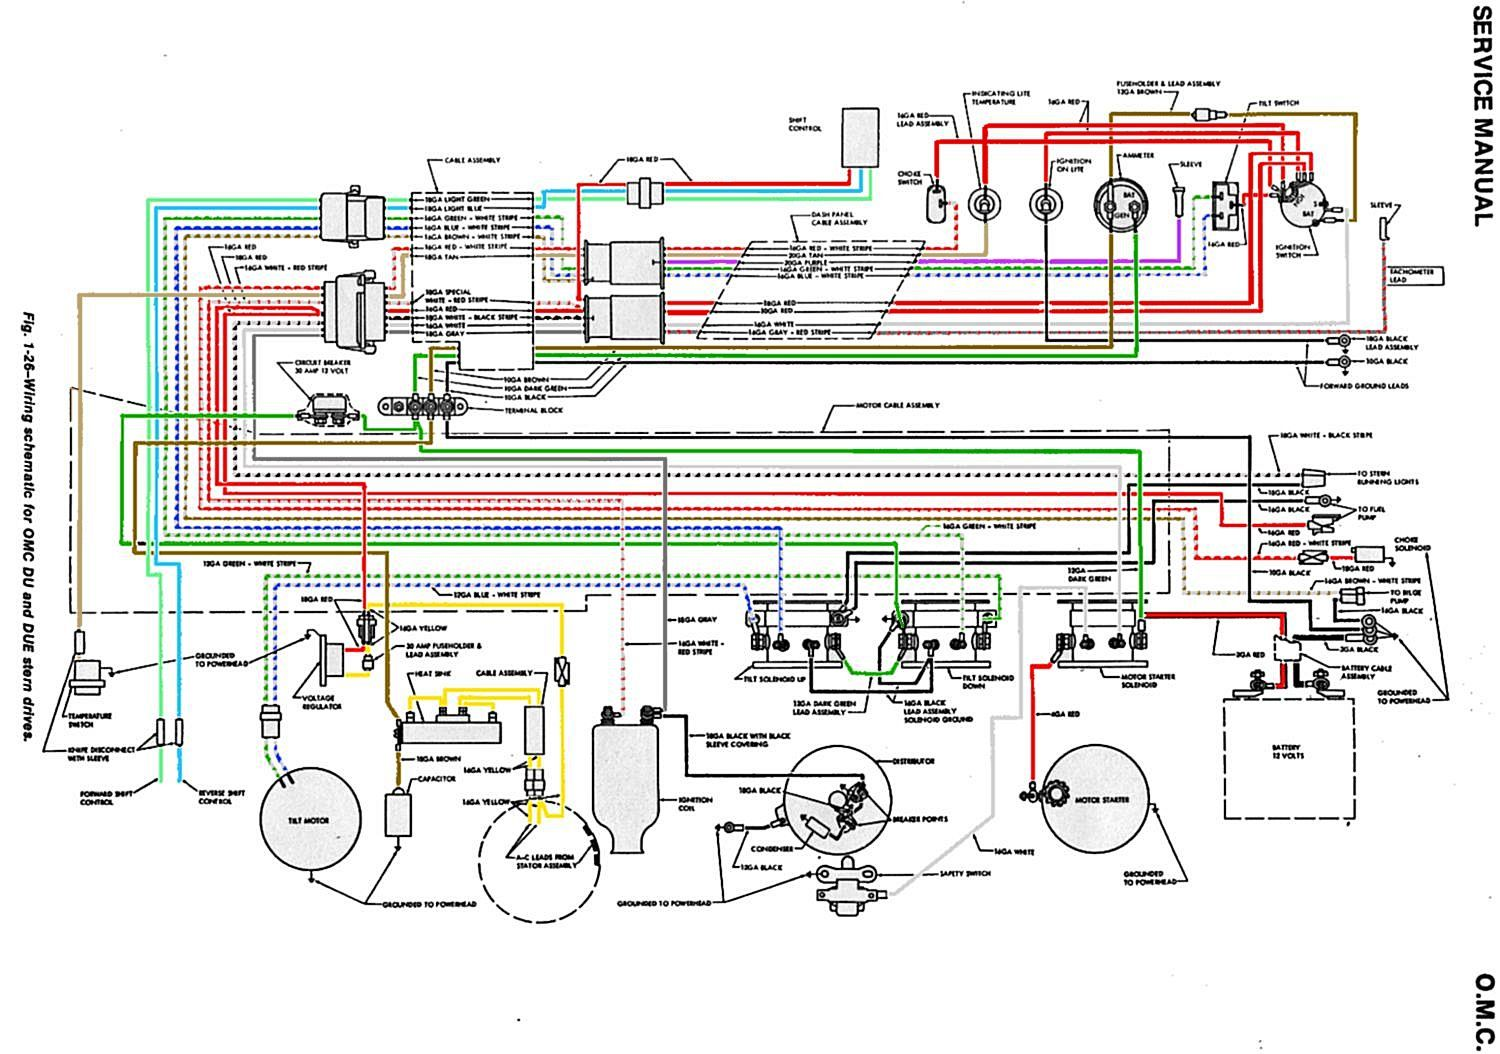 65 68_OMC_Wiring_Schematic omc boat technical info omc wiring harness diagram at pacquiaovsvargaslive.co